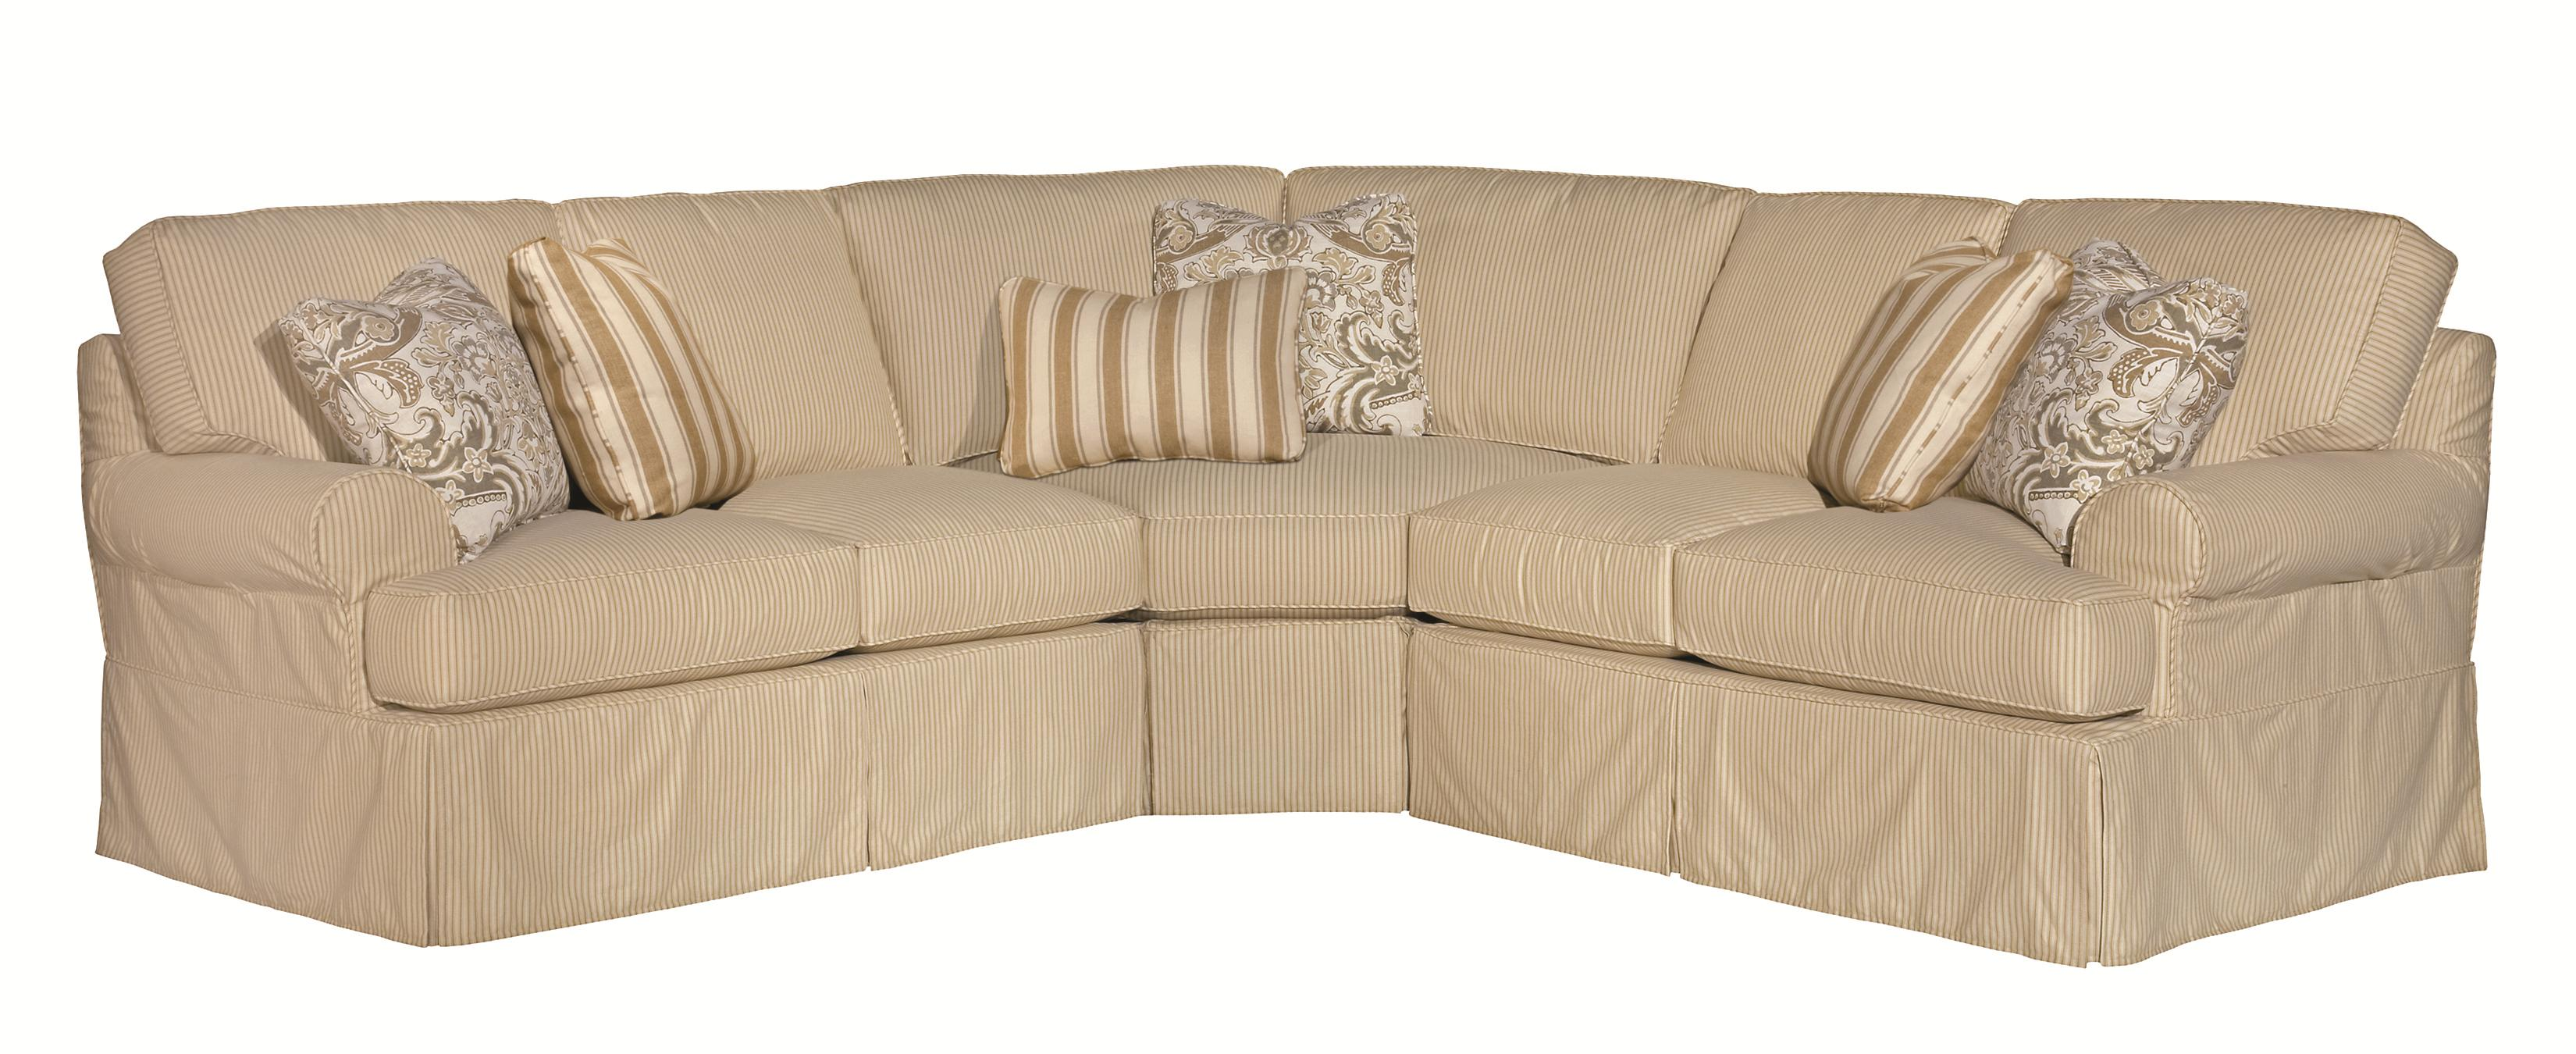 five piece slipcover sectional sofa with rolled arms by With 5 piece sectional sofa slipcovers